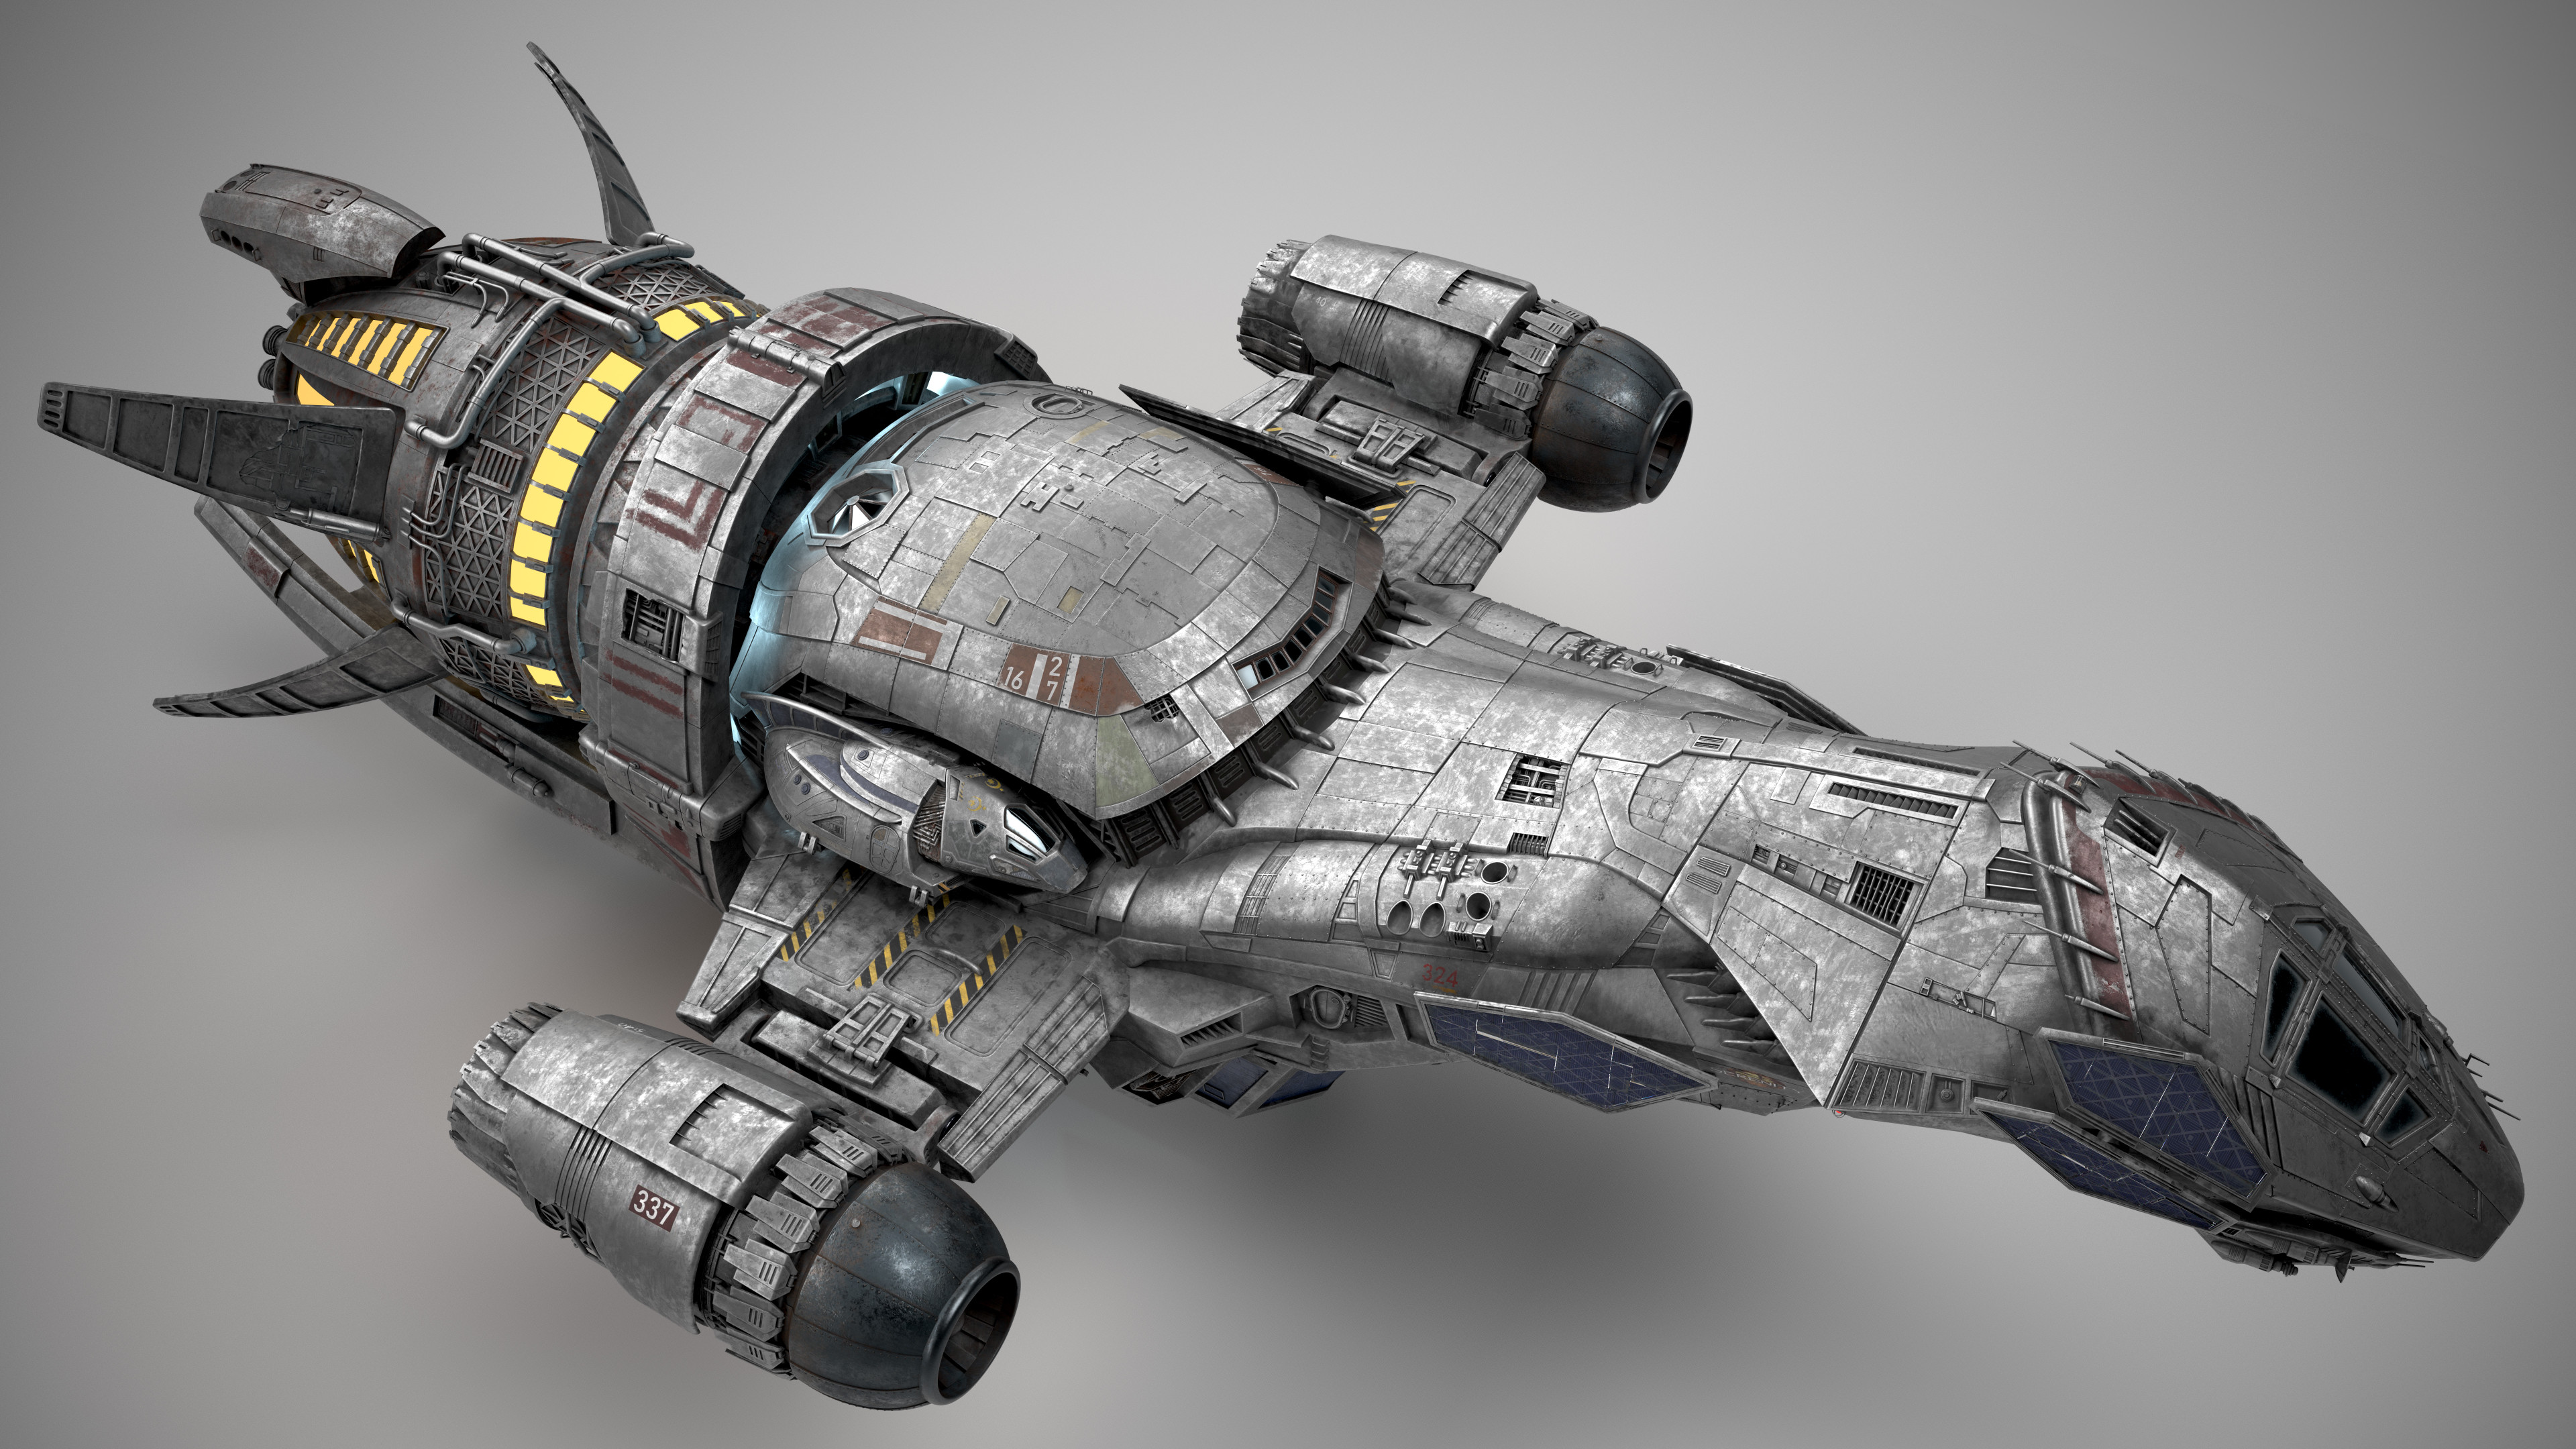 The file in Substance Painter